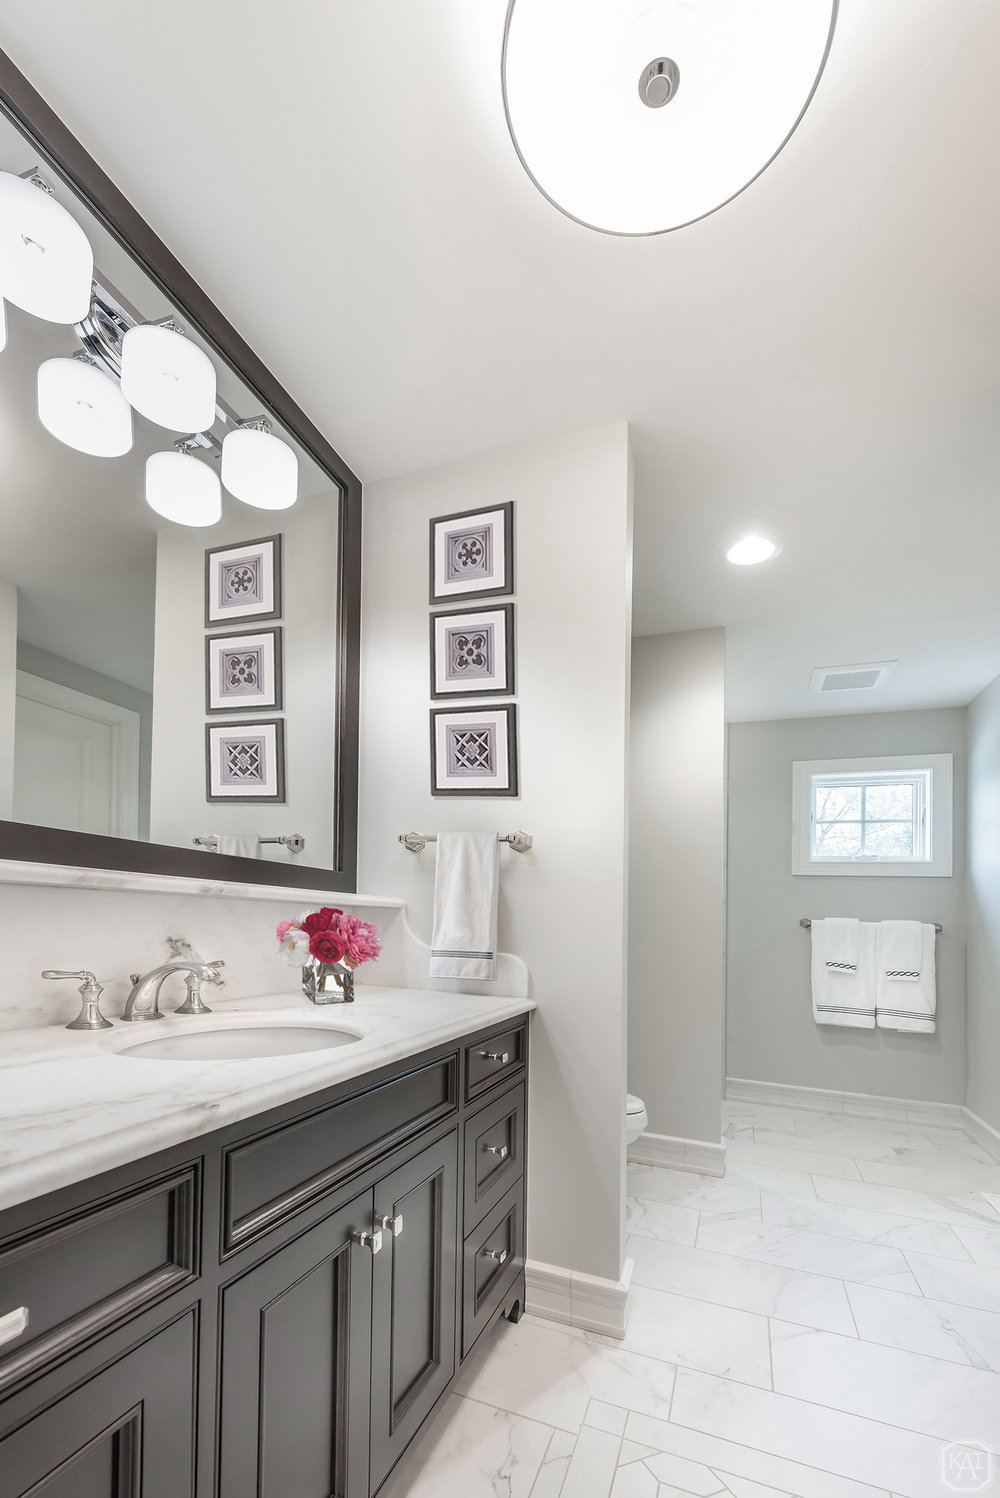 ZITELLA GUEST BATHROOM VANITY AND ARTWORK AND TILE FLOORING 2_FINAL_EDIT.jpg